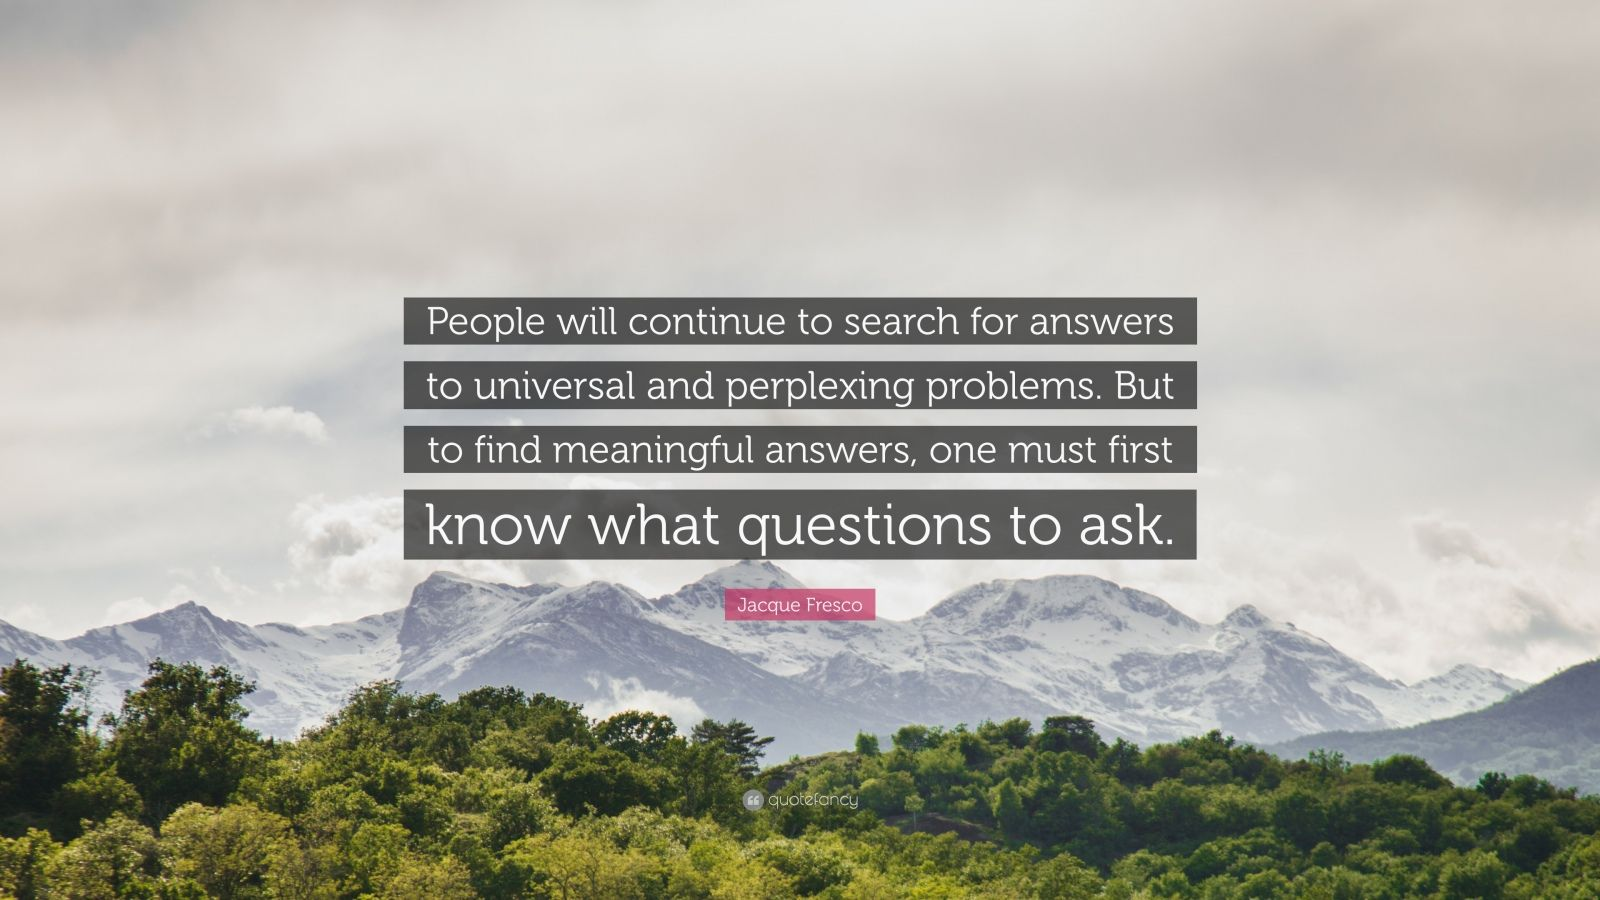 """Jacque Fresco Quote: """"People will continue to search for answers to universal and perplexing problems. But to find meaningful answers, one must first know what questions to ask."""""""